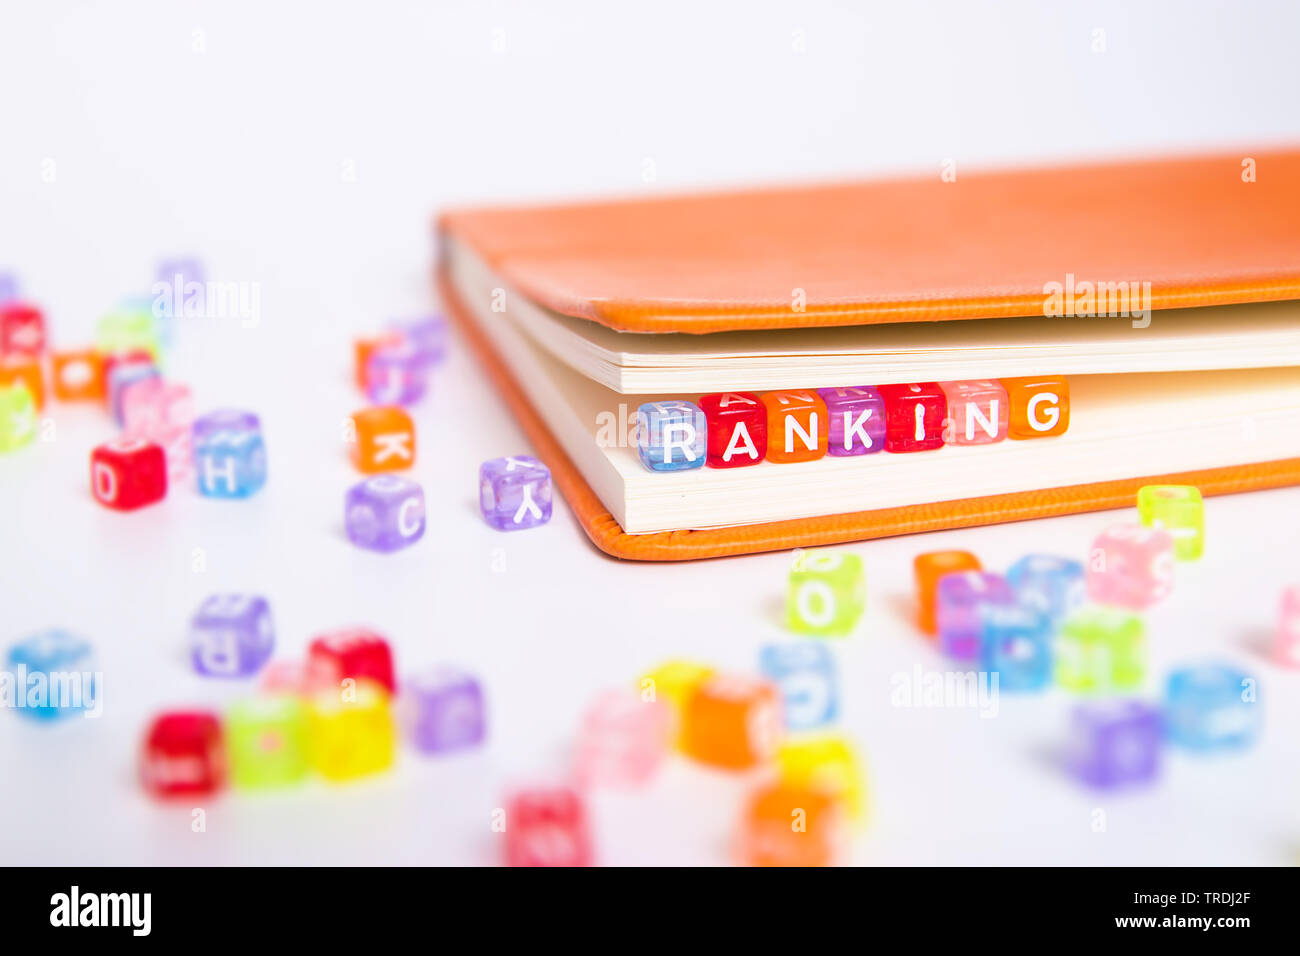 RANKING word written on colorful bead - Stock Image